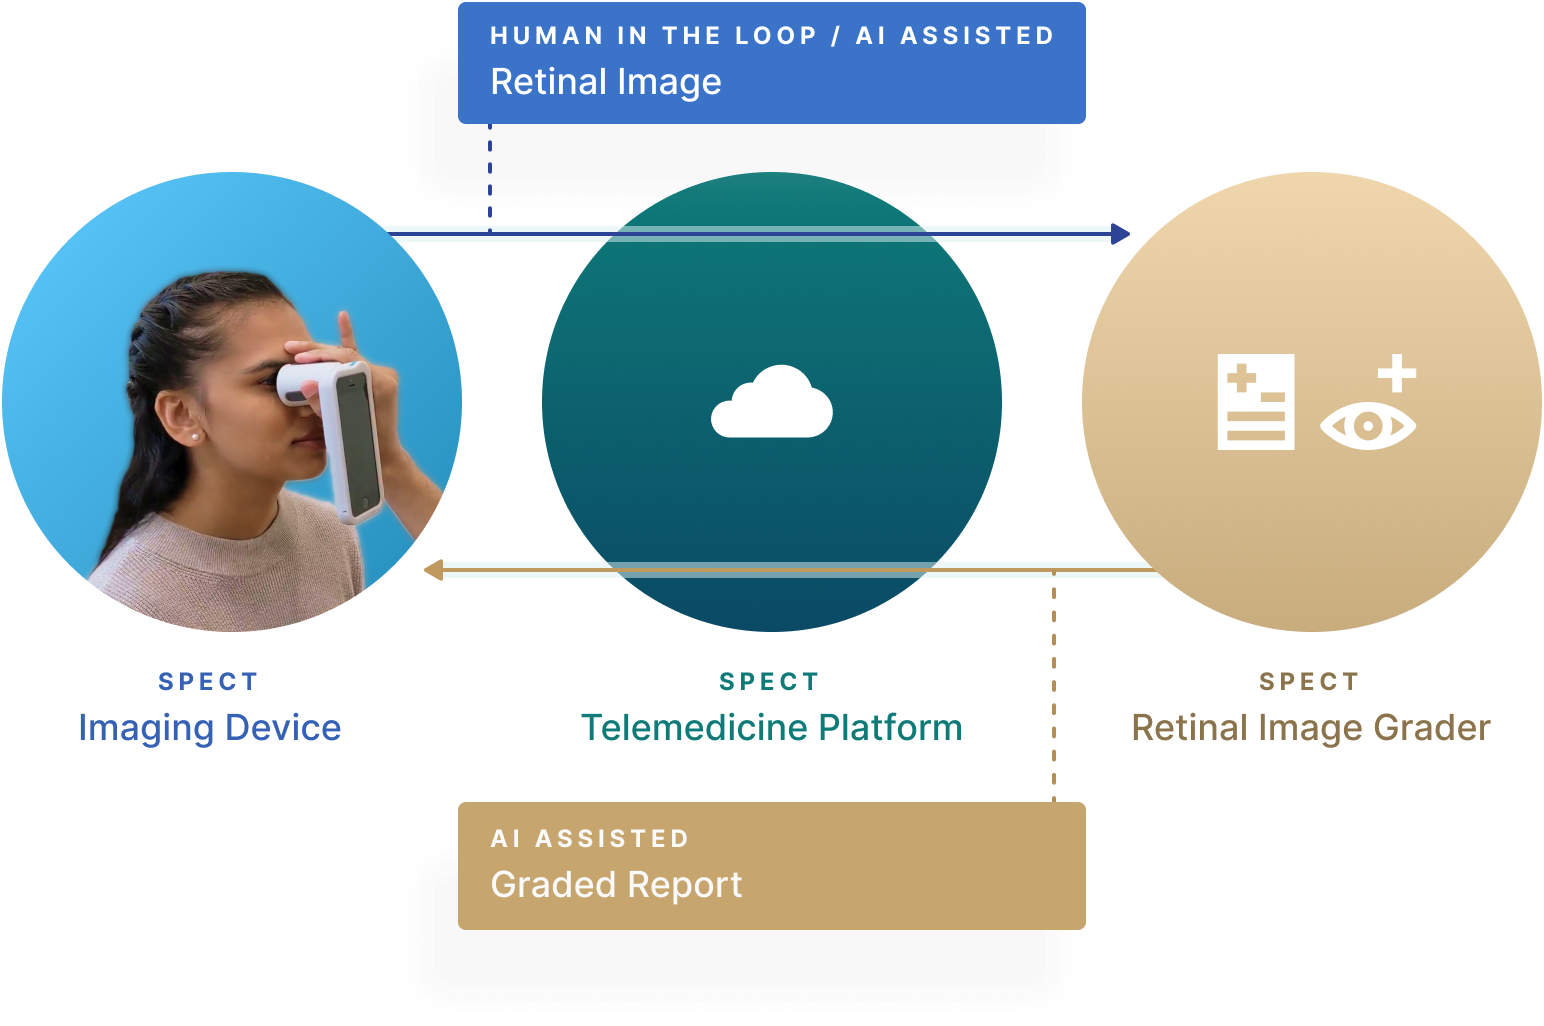 Diagram of Spect's Platform.  1. Spect's Imaging Device 2. Spect's Telemedicine Platform 3. Spect's Retinal Image Grader  The Imaging Device (1) sends a human in the loop/AI assisted retinal image to the telemedicine platform, which is then graded by Spect's retinal image grader, sending a graded report back to the patient and operator.